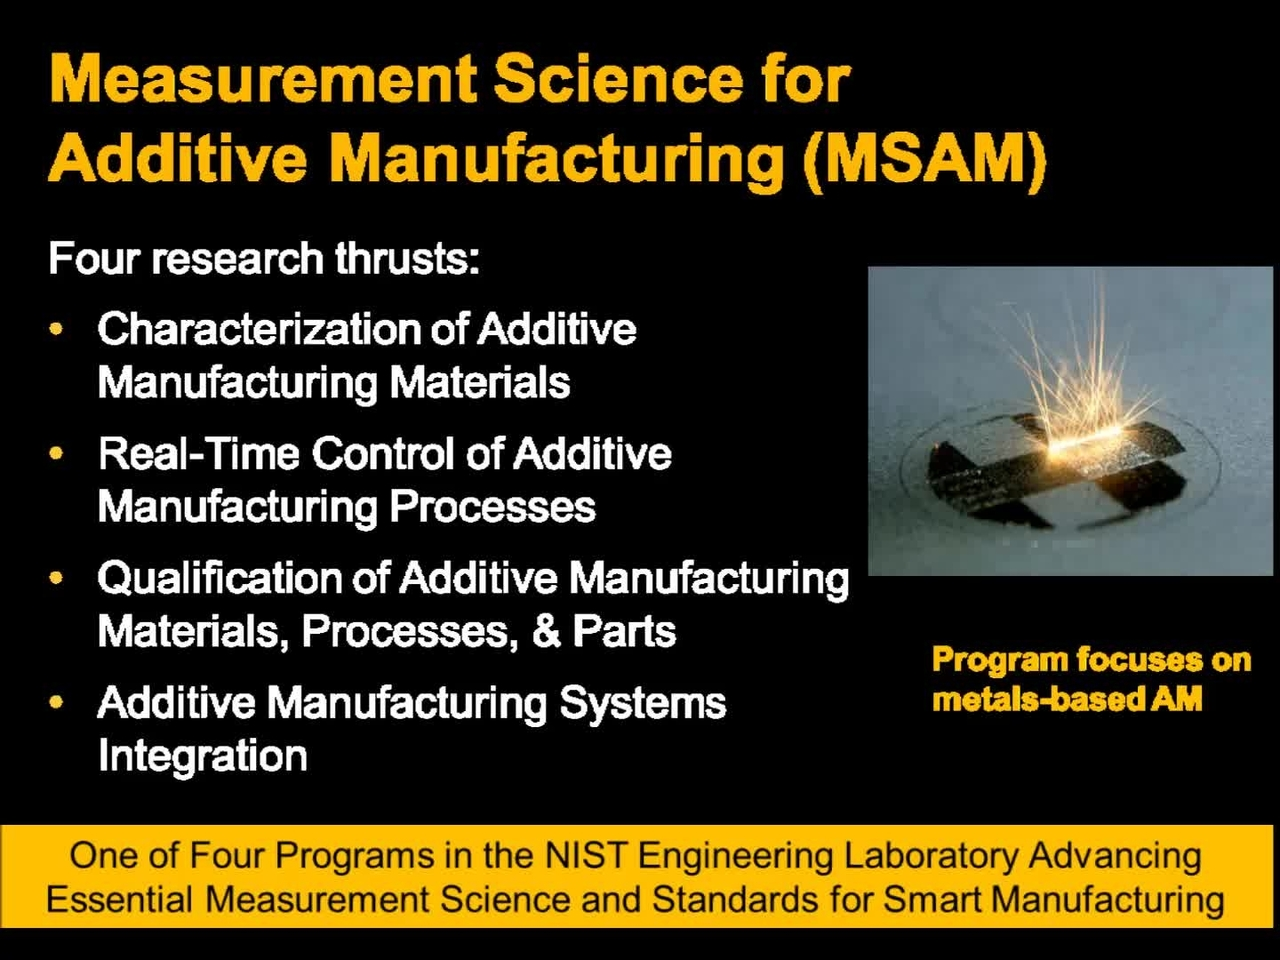 Overview of the Measurement Science for Additive Manufacturing (MSAM) Program